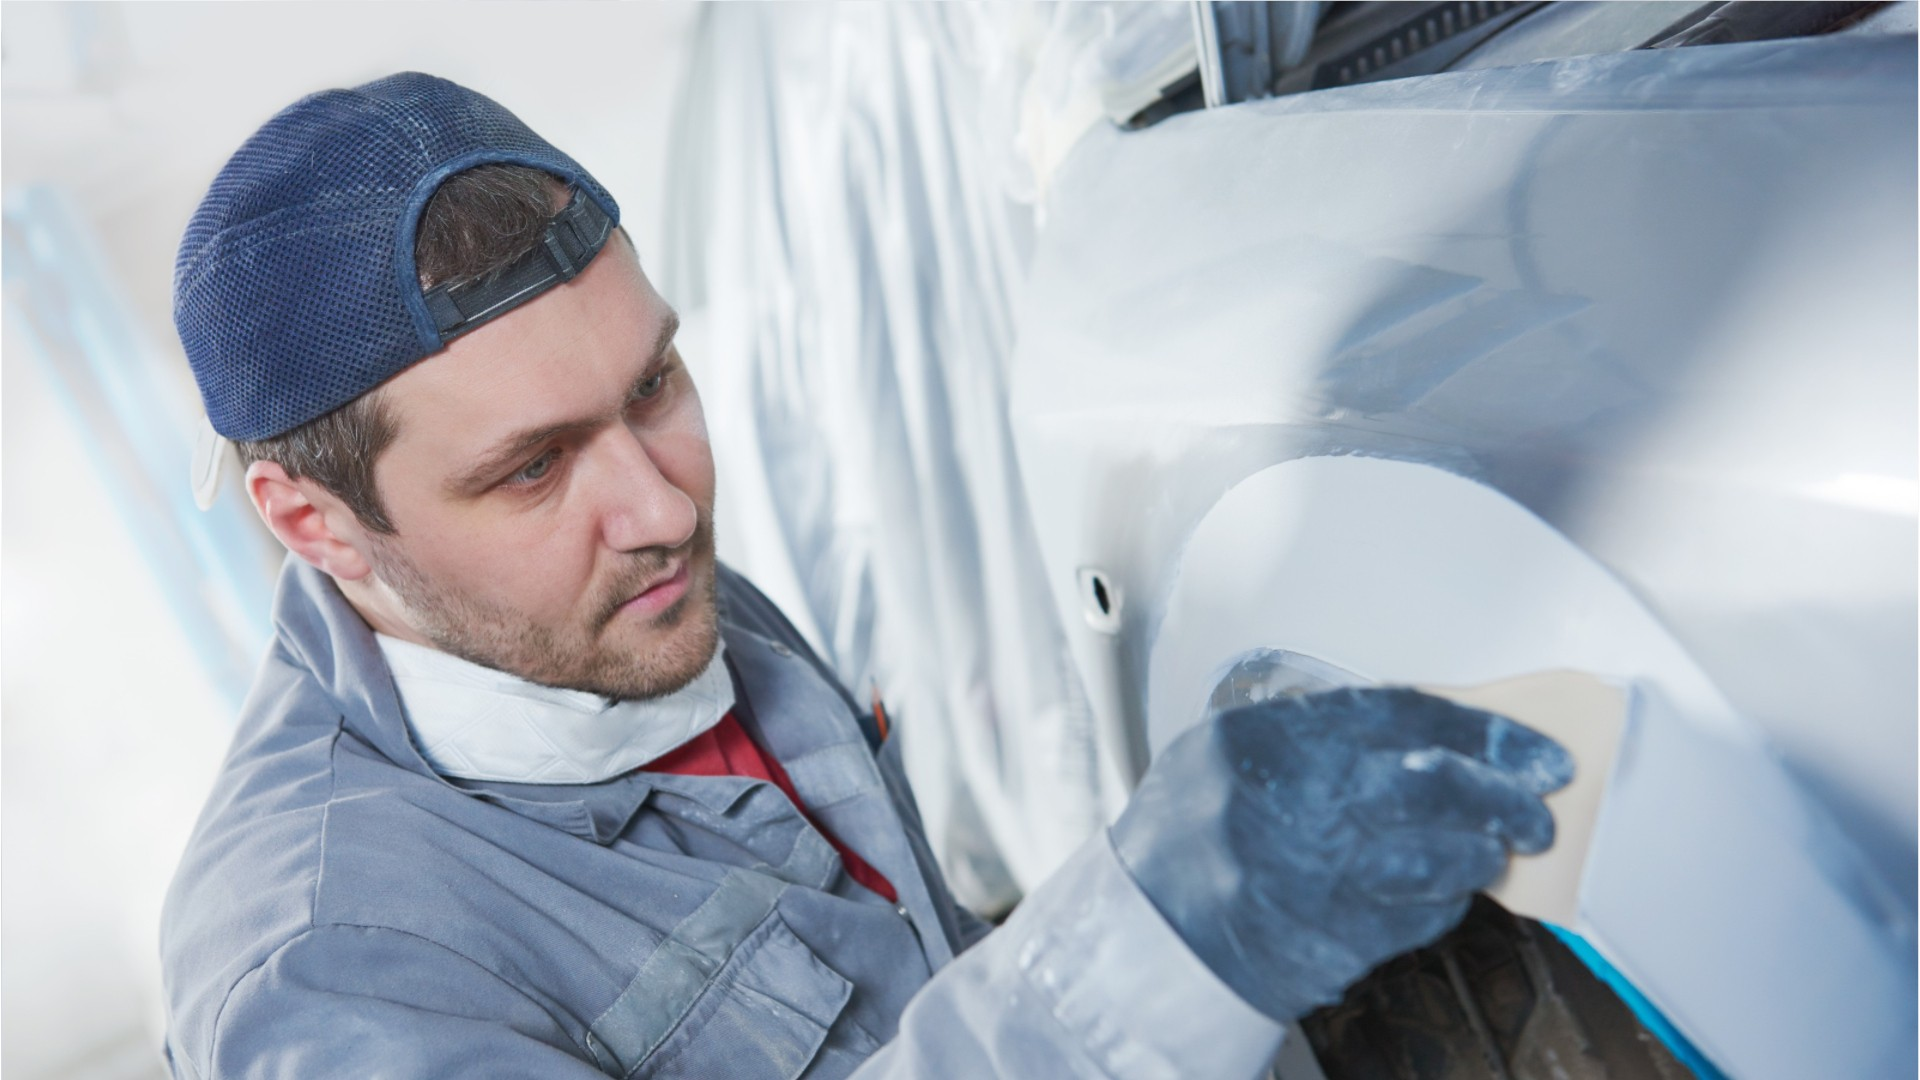 Car Repair And Maintenance >> Automotive Body & Related Repairers at My Next Move